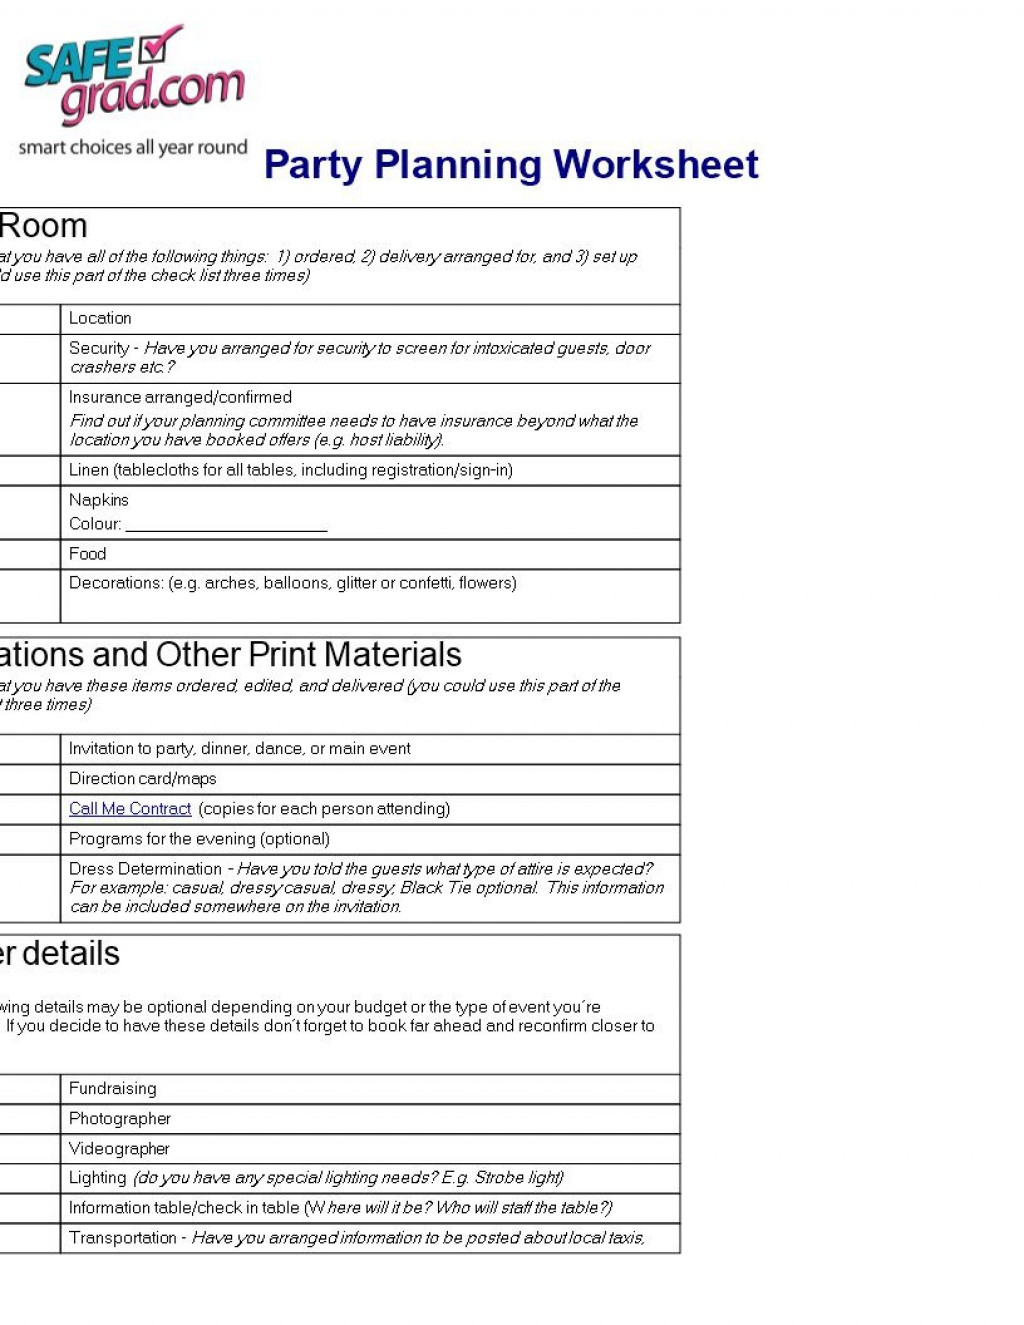 007 Beautiful Party Plan Checklist Template Picture  Planning Free Graduation BirthdayLarge